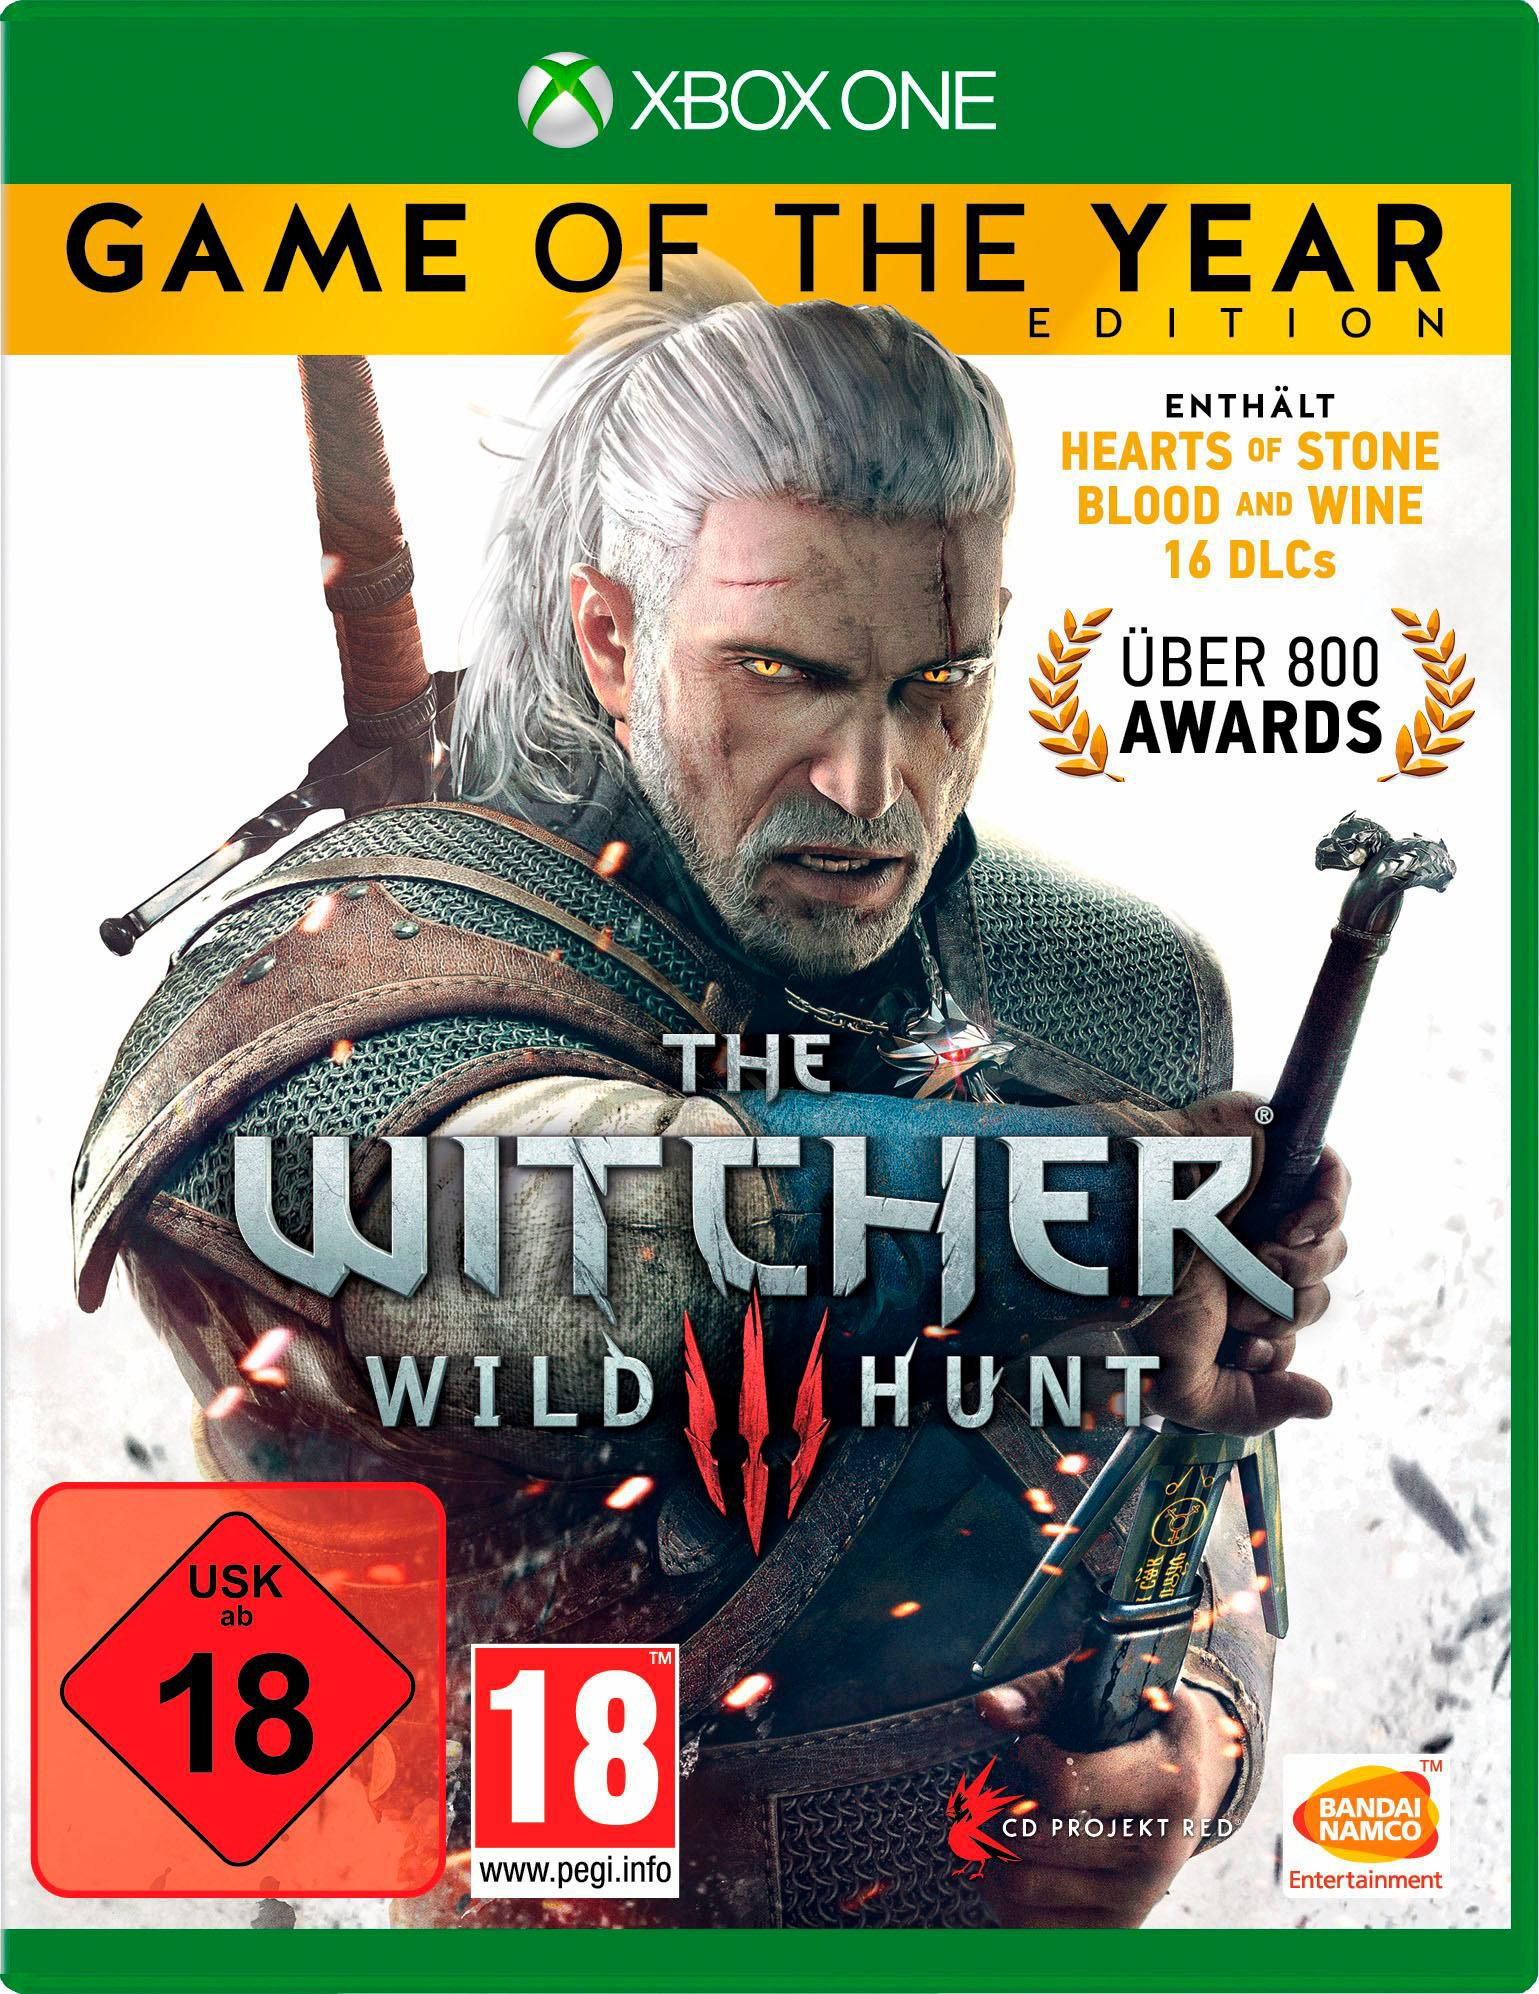 BANDAI NAMCO The Witcher 3: Wild Hunt - Game of of the Year Edition (Xbox One)